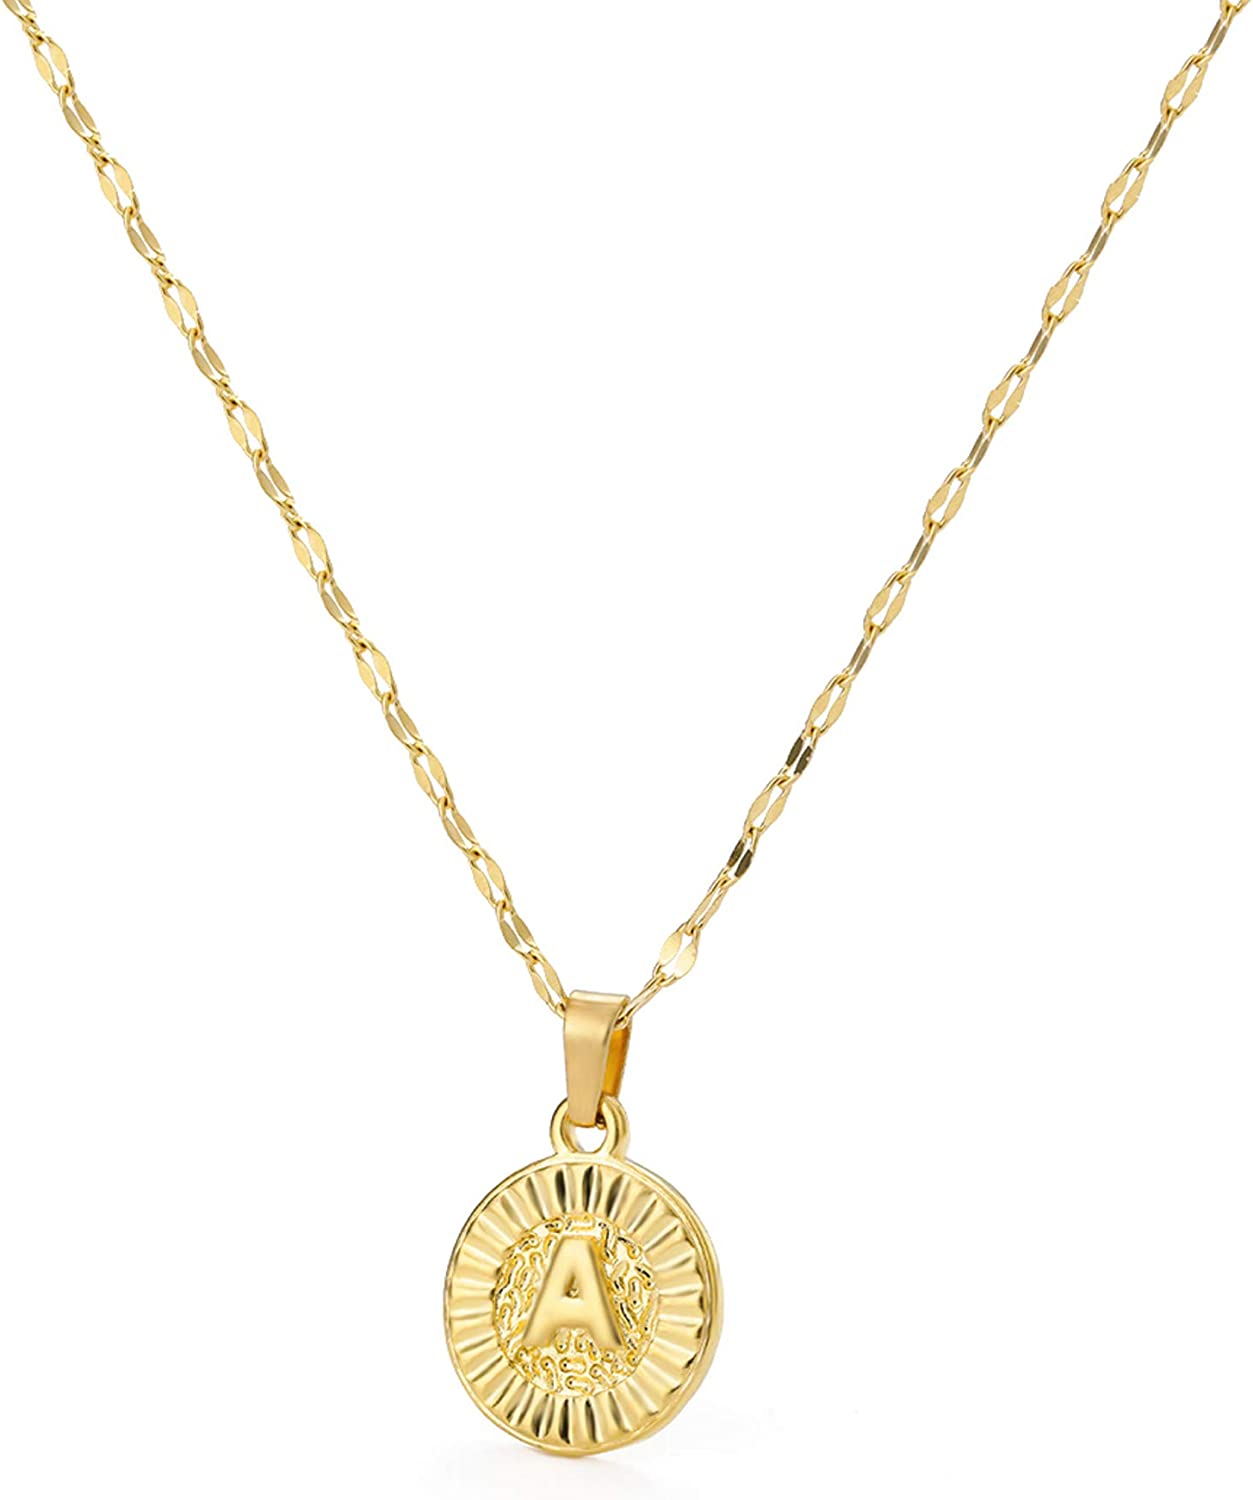 Sewyer Surprise Shipping included price Gold Initial Necklace-14K Disc Pendant Capita Filled